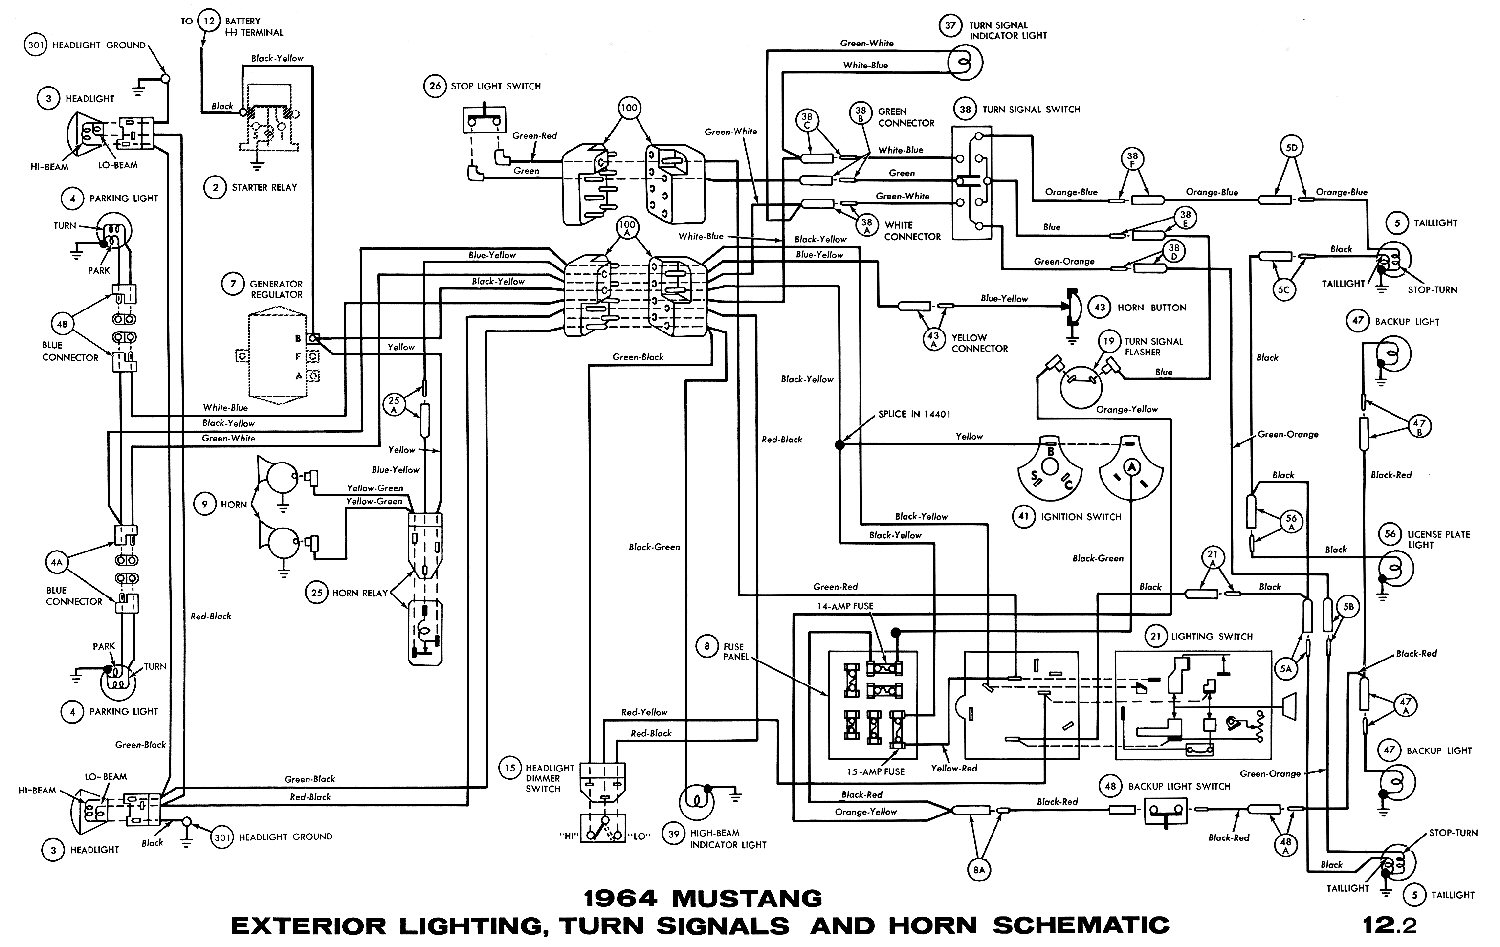 1964i 1964 mustang wiring diagrams average joe restoration 1969 mustang alternator wiring diagram at gsmportal.co